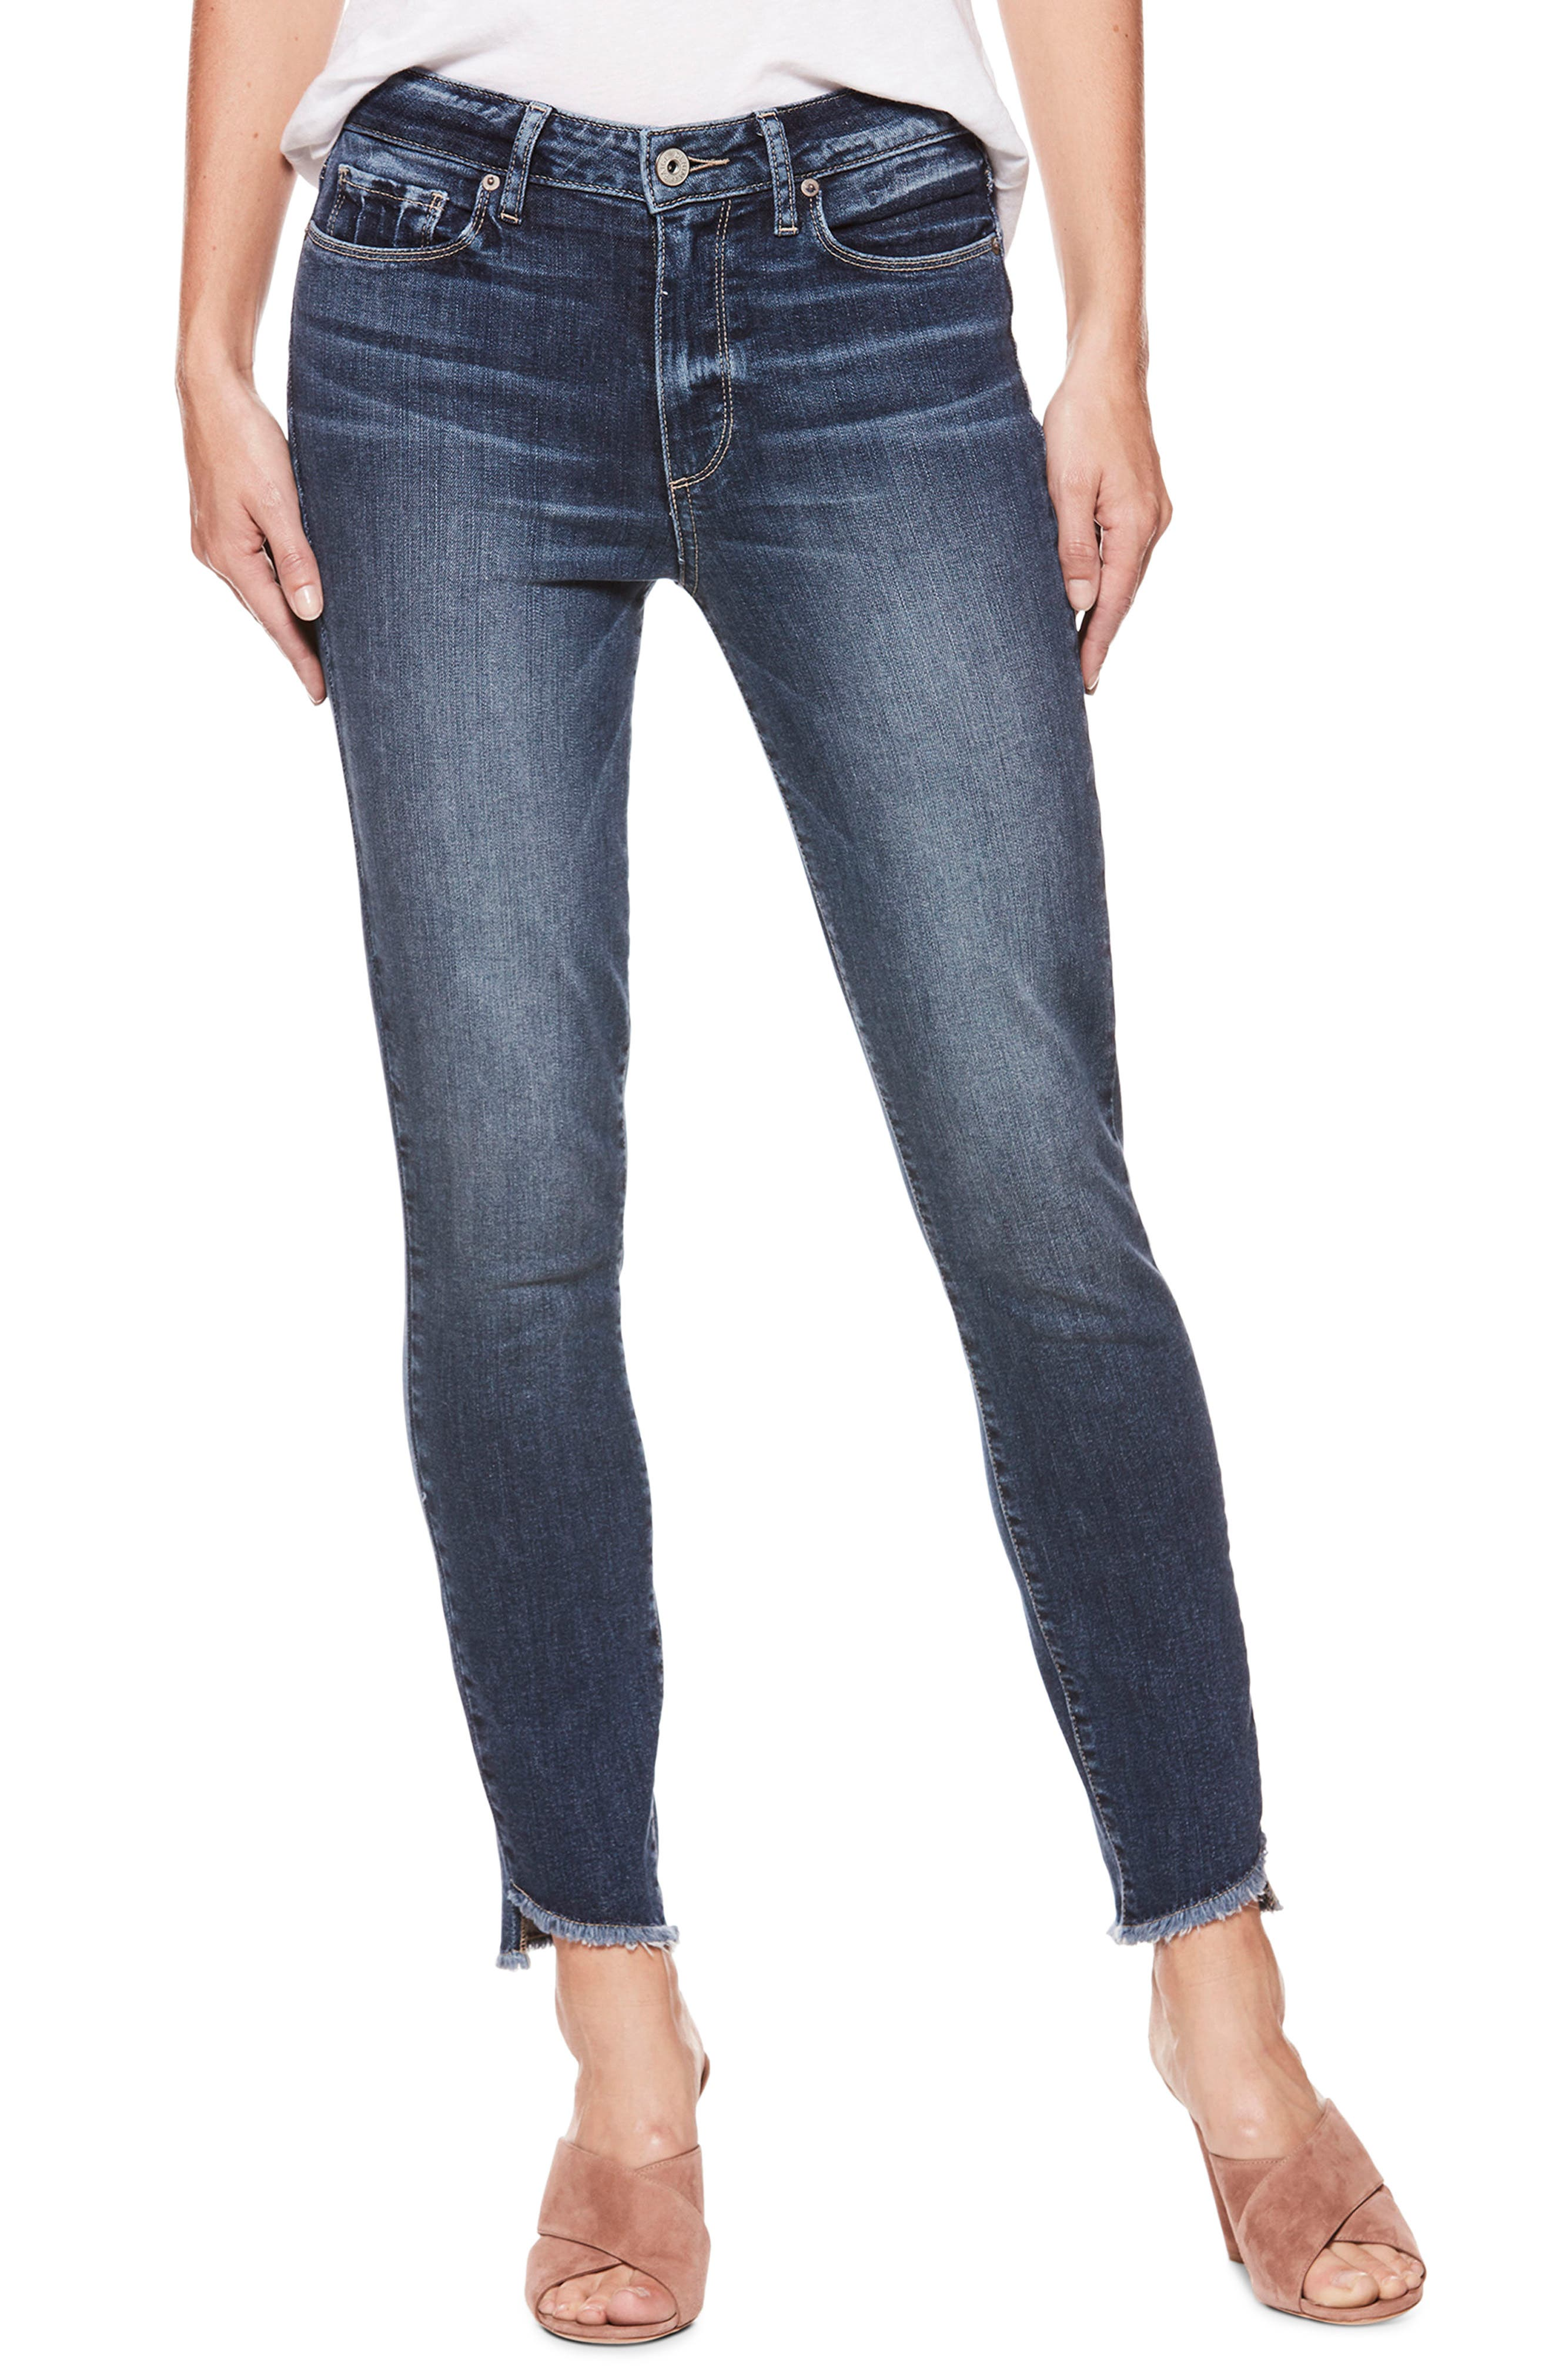 Hoxton High Waist Ankle Skinny Jeans,                         Main,                         color, Blue